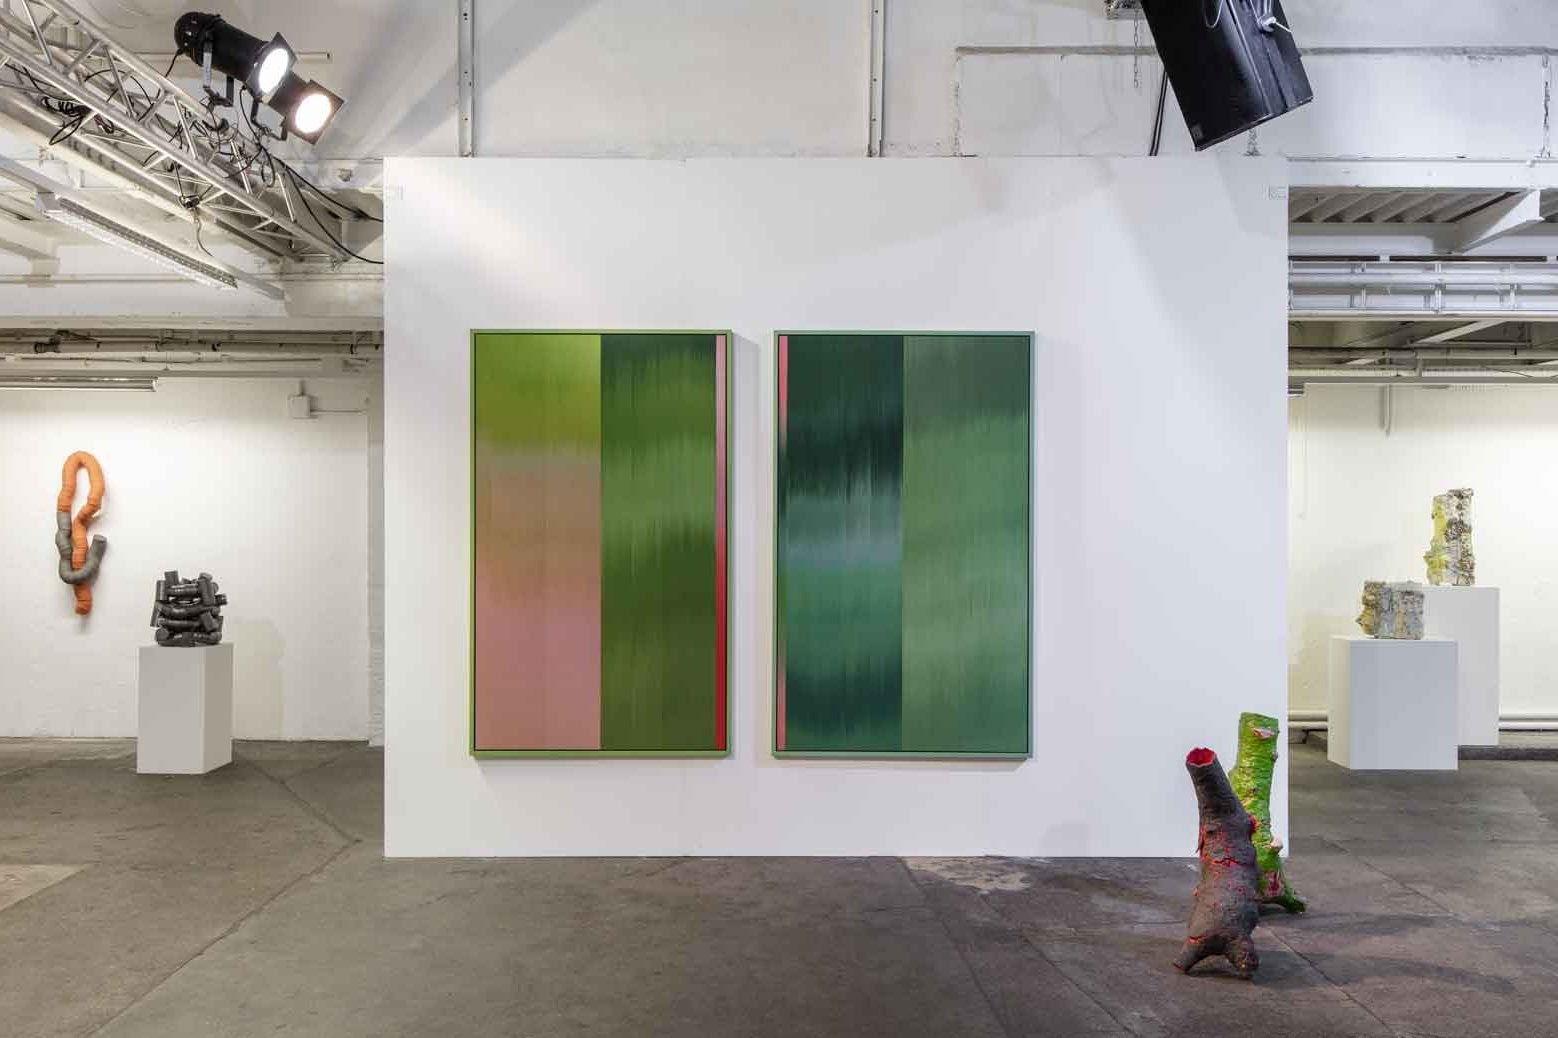 left to right: Work by Martin Bodilsen Kaldahl, Ptolemy Mann and Aneta Regel